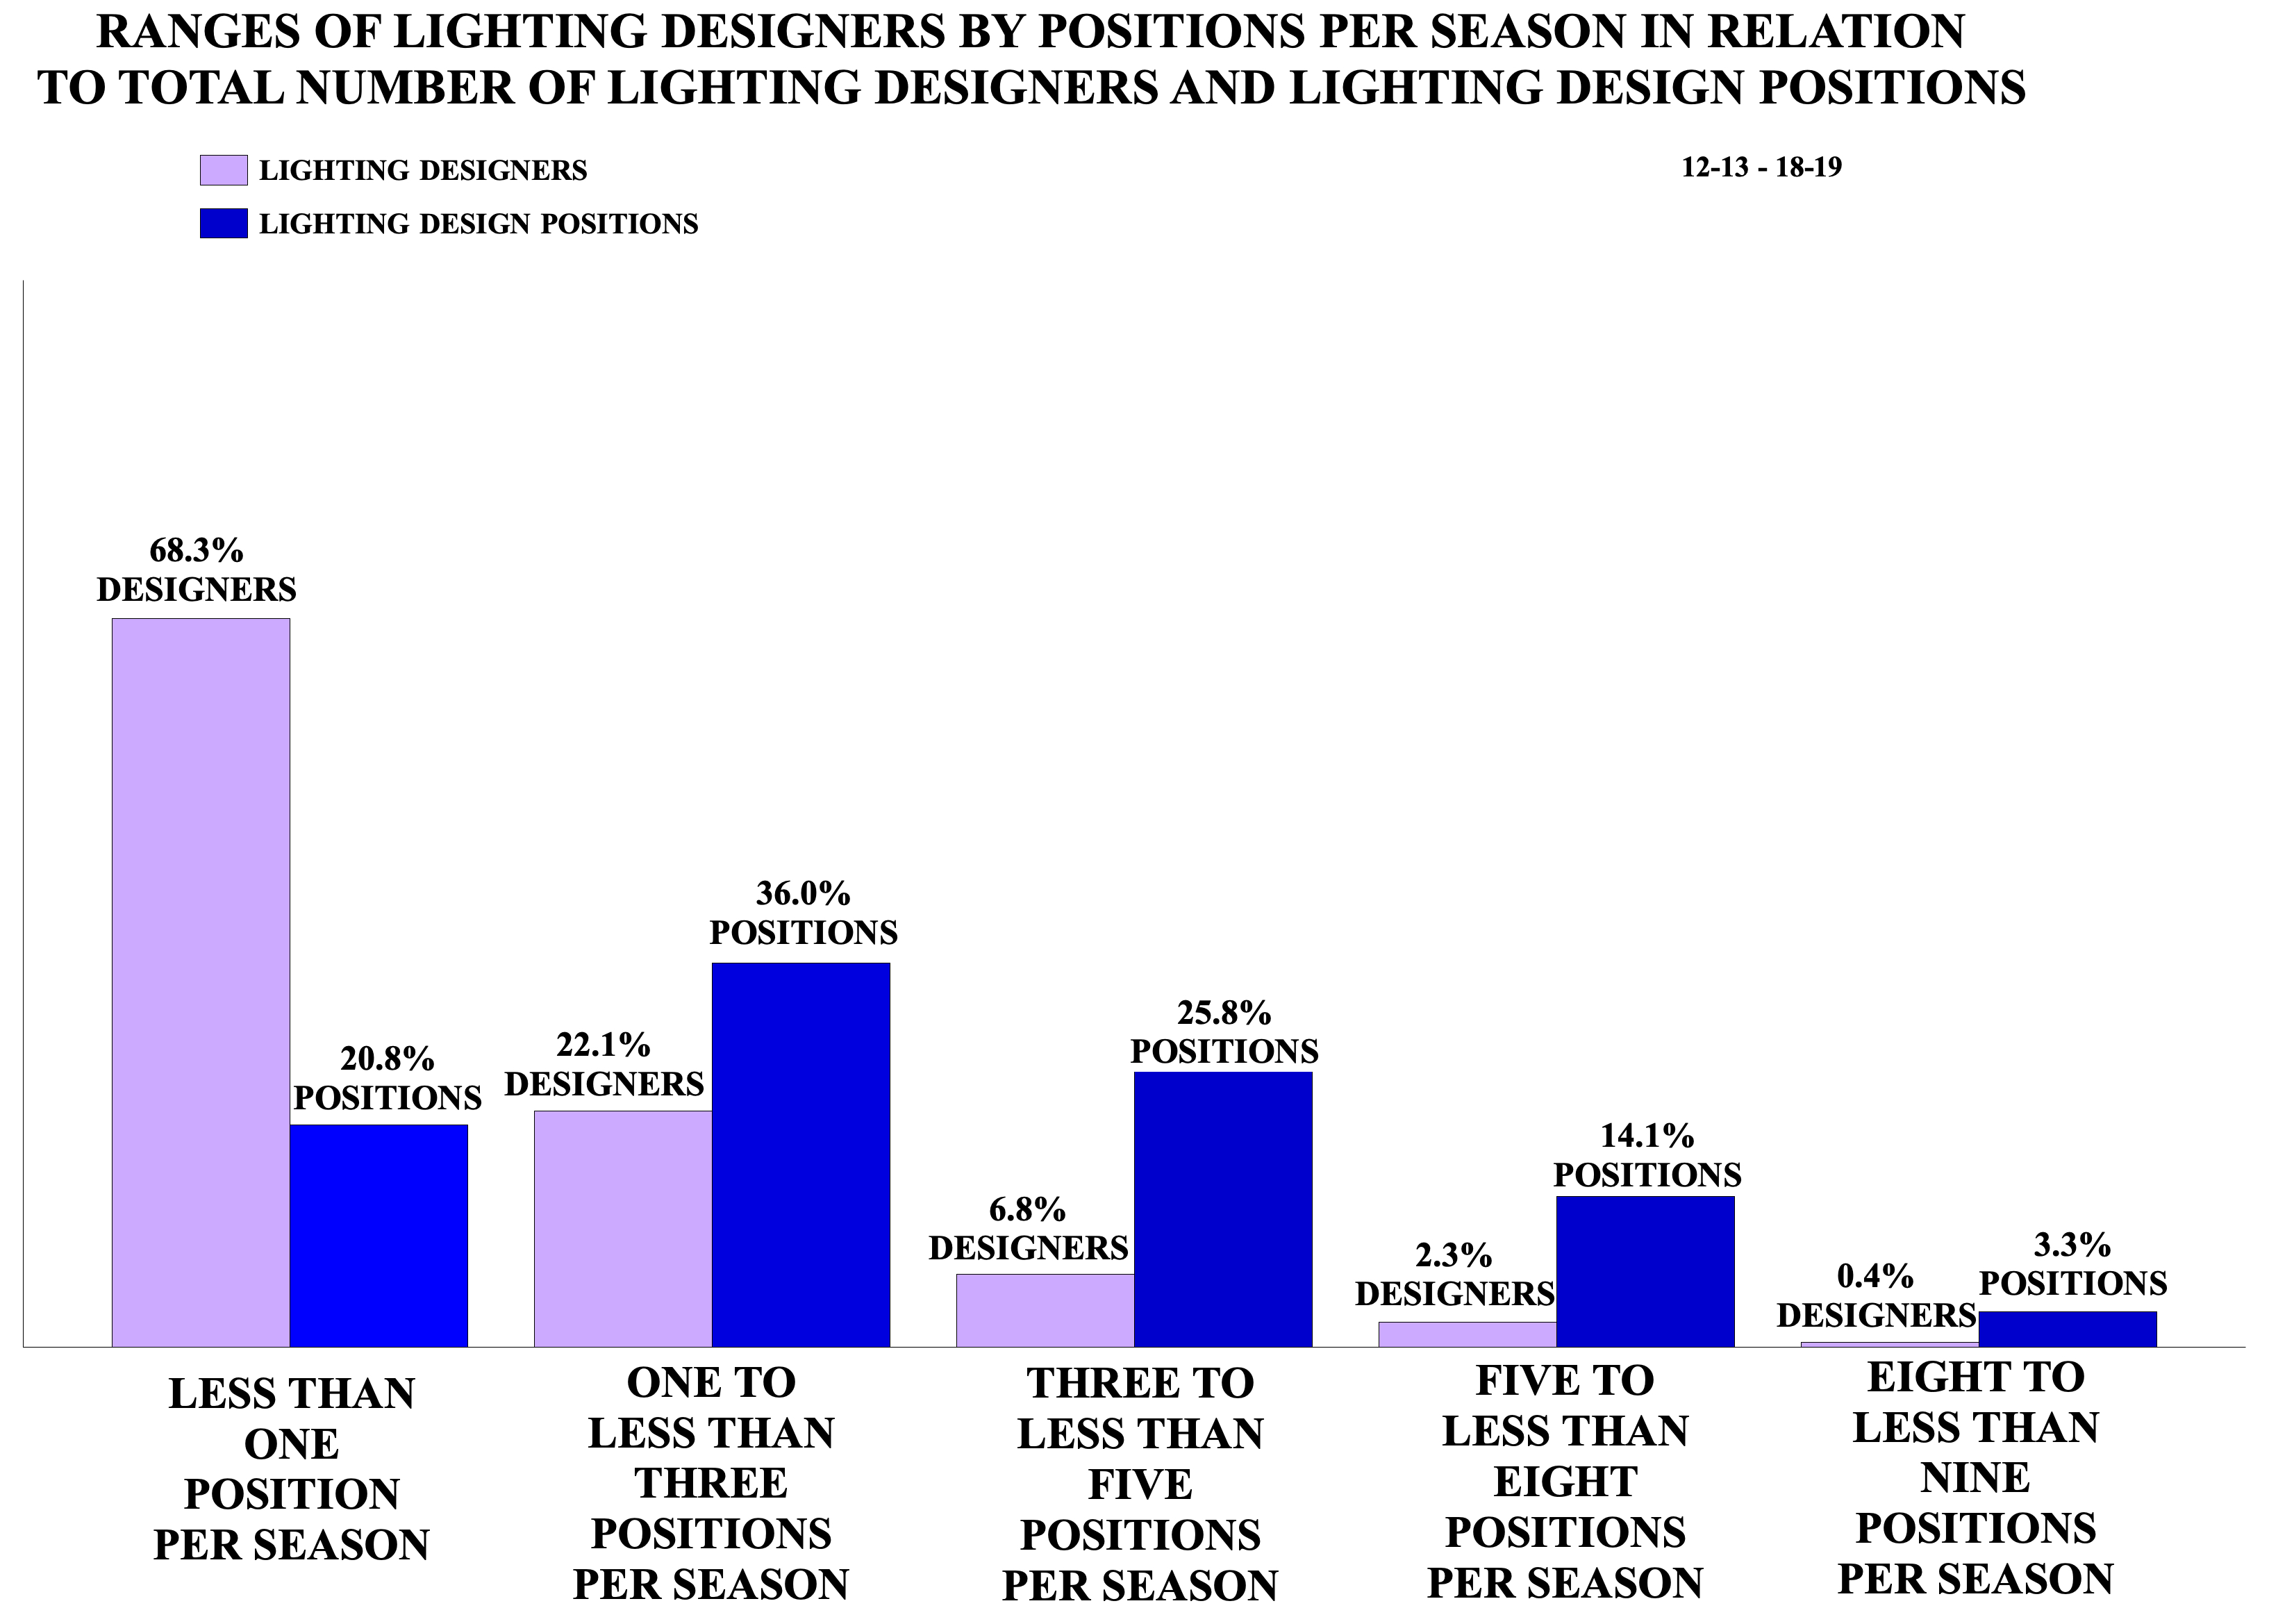 Ranges of Lighting Designers by Positions Per Season in Relation to Total Number of Lighting Designers and Lighting Design Positions